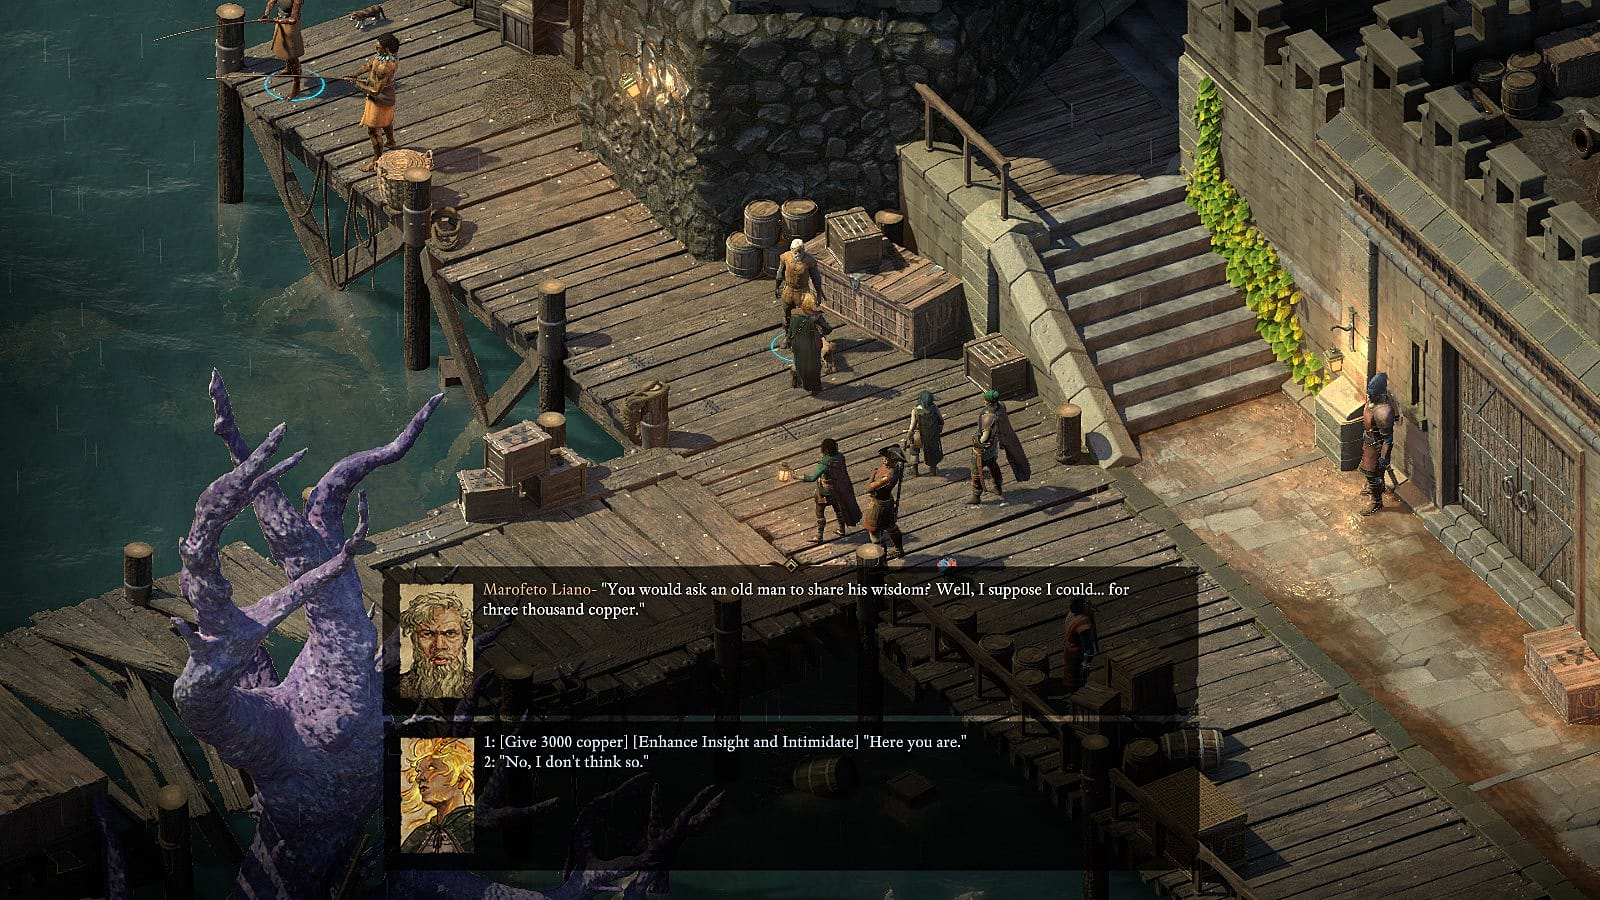 Pillars of Eternity 2 Skill Trainer Locations Guide